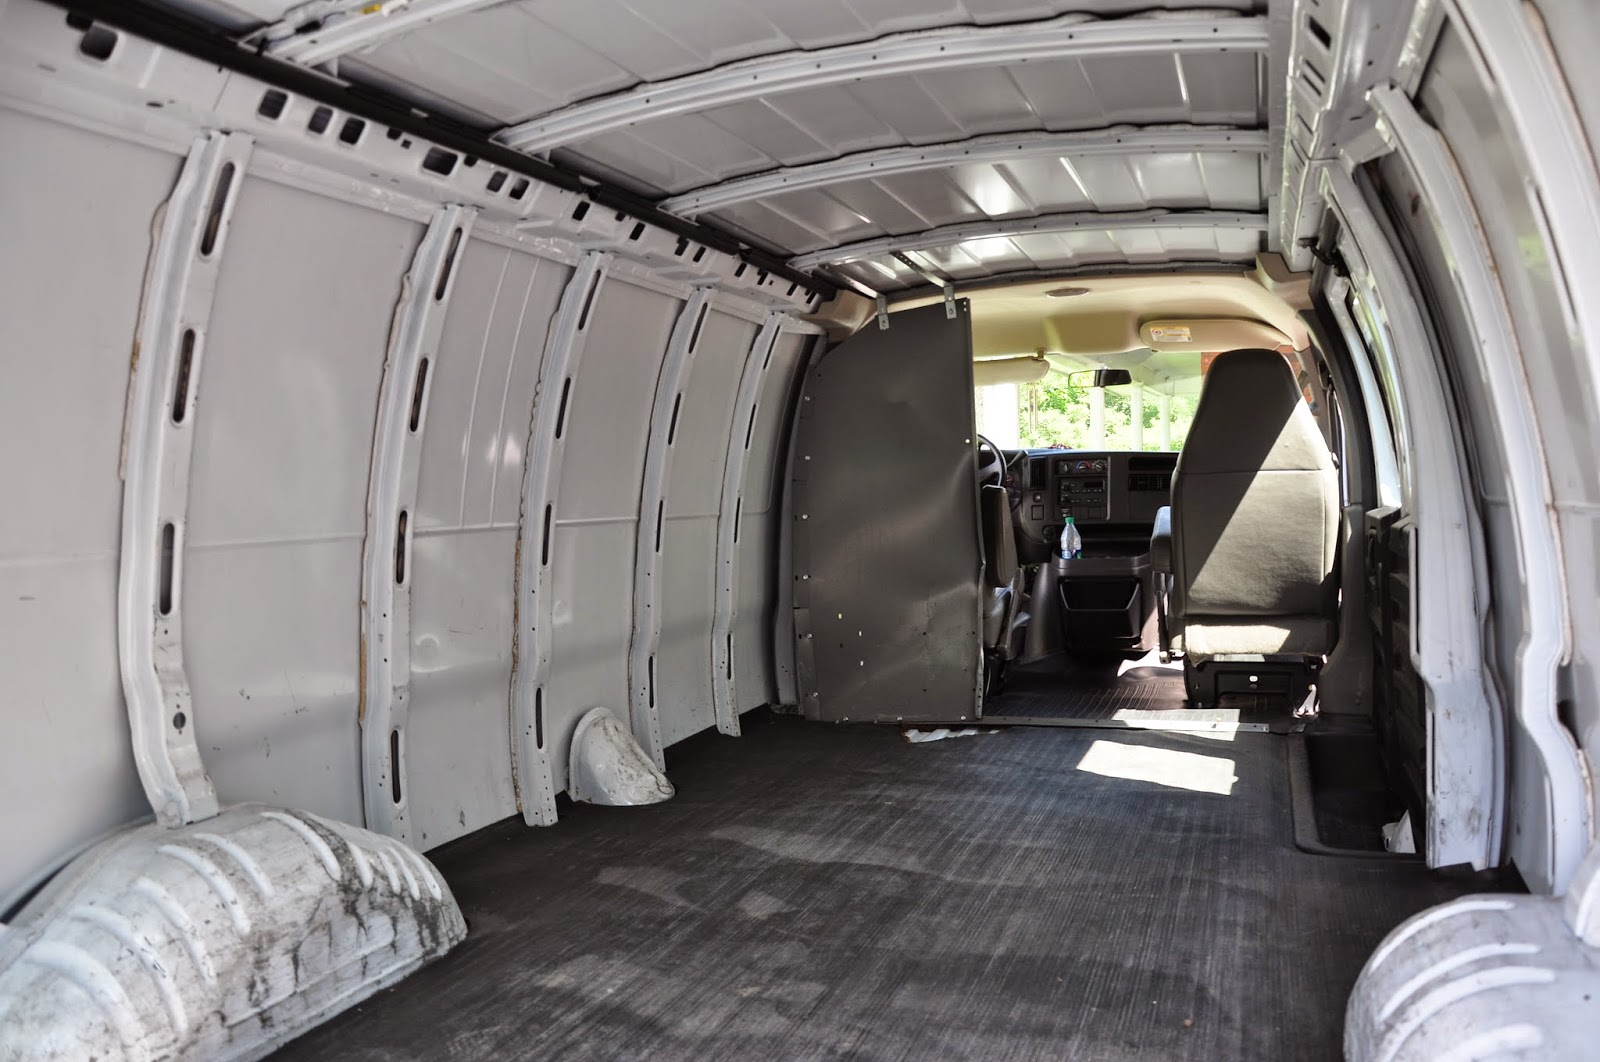 Here Is The Interior Of Chevy Express As We Bought It Empty Shell Offers Plenty To Work With Van A Blank Canvas Waiting For An Artist